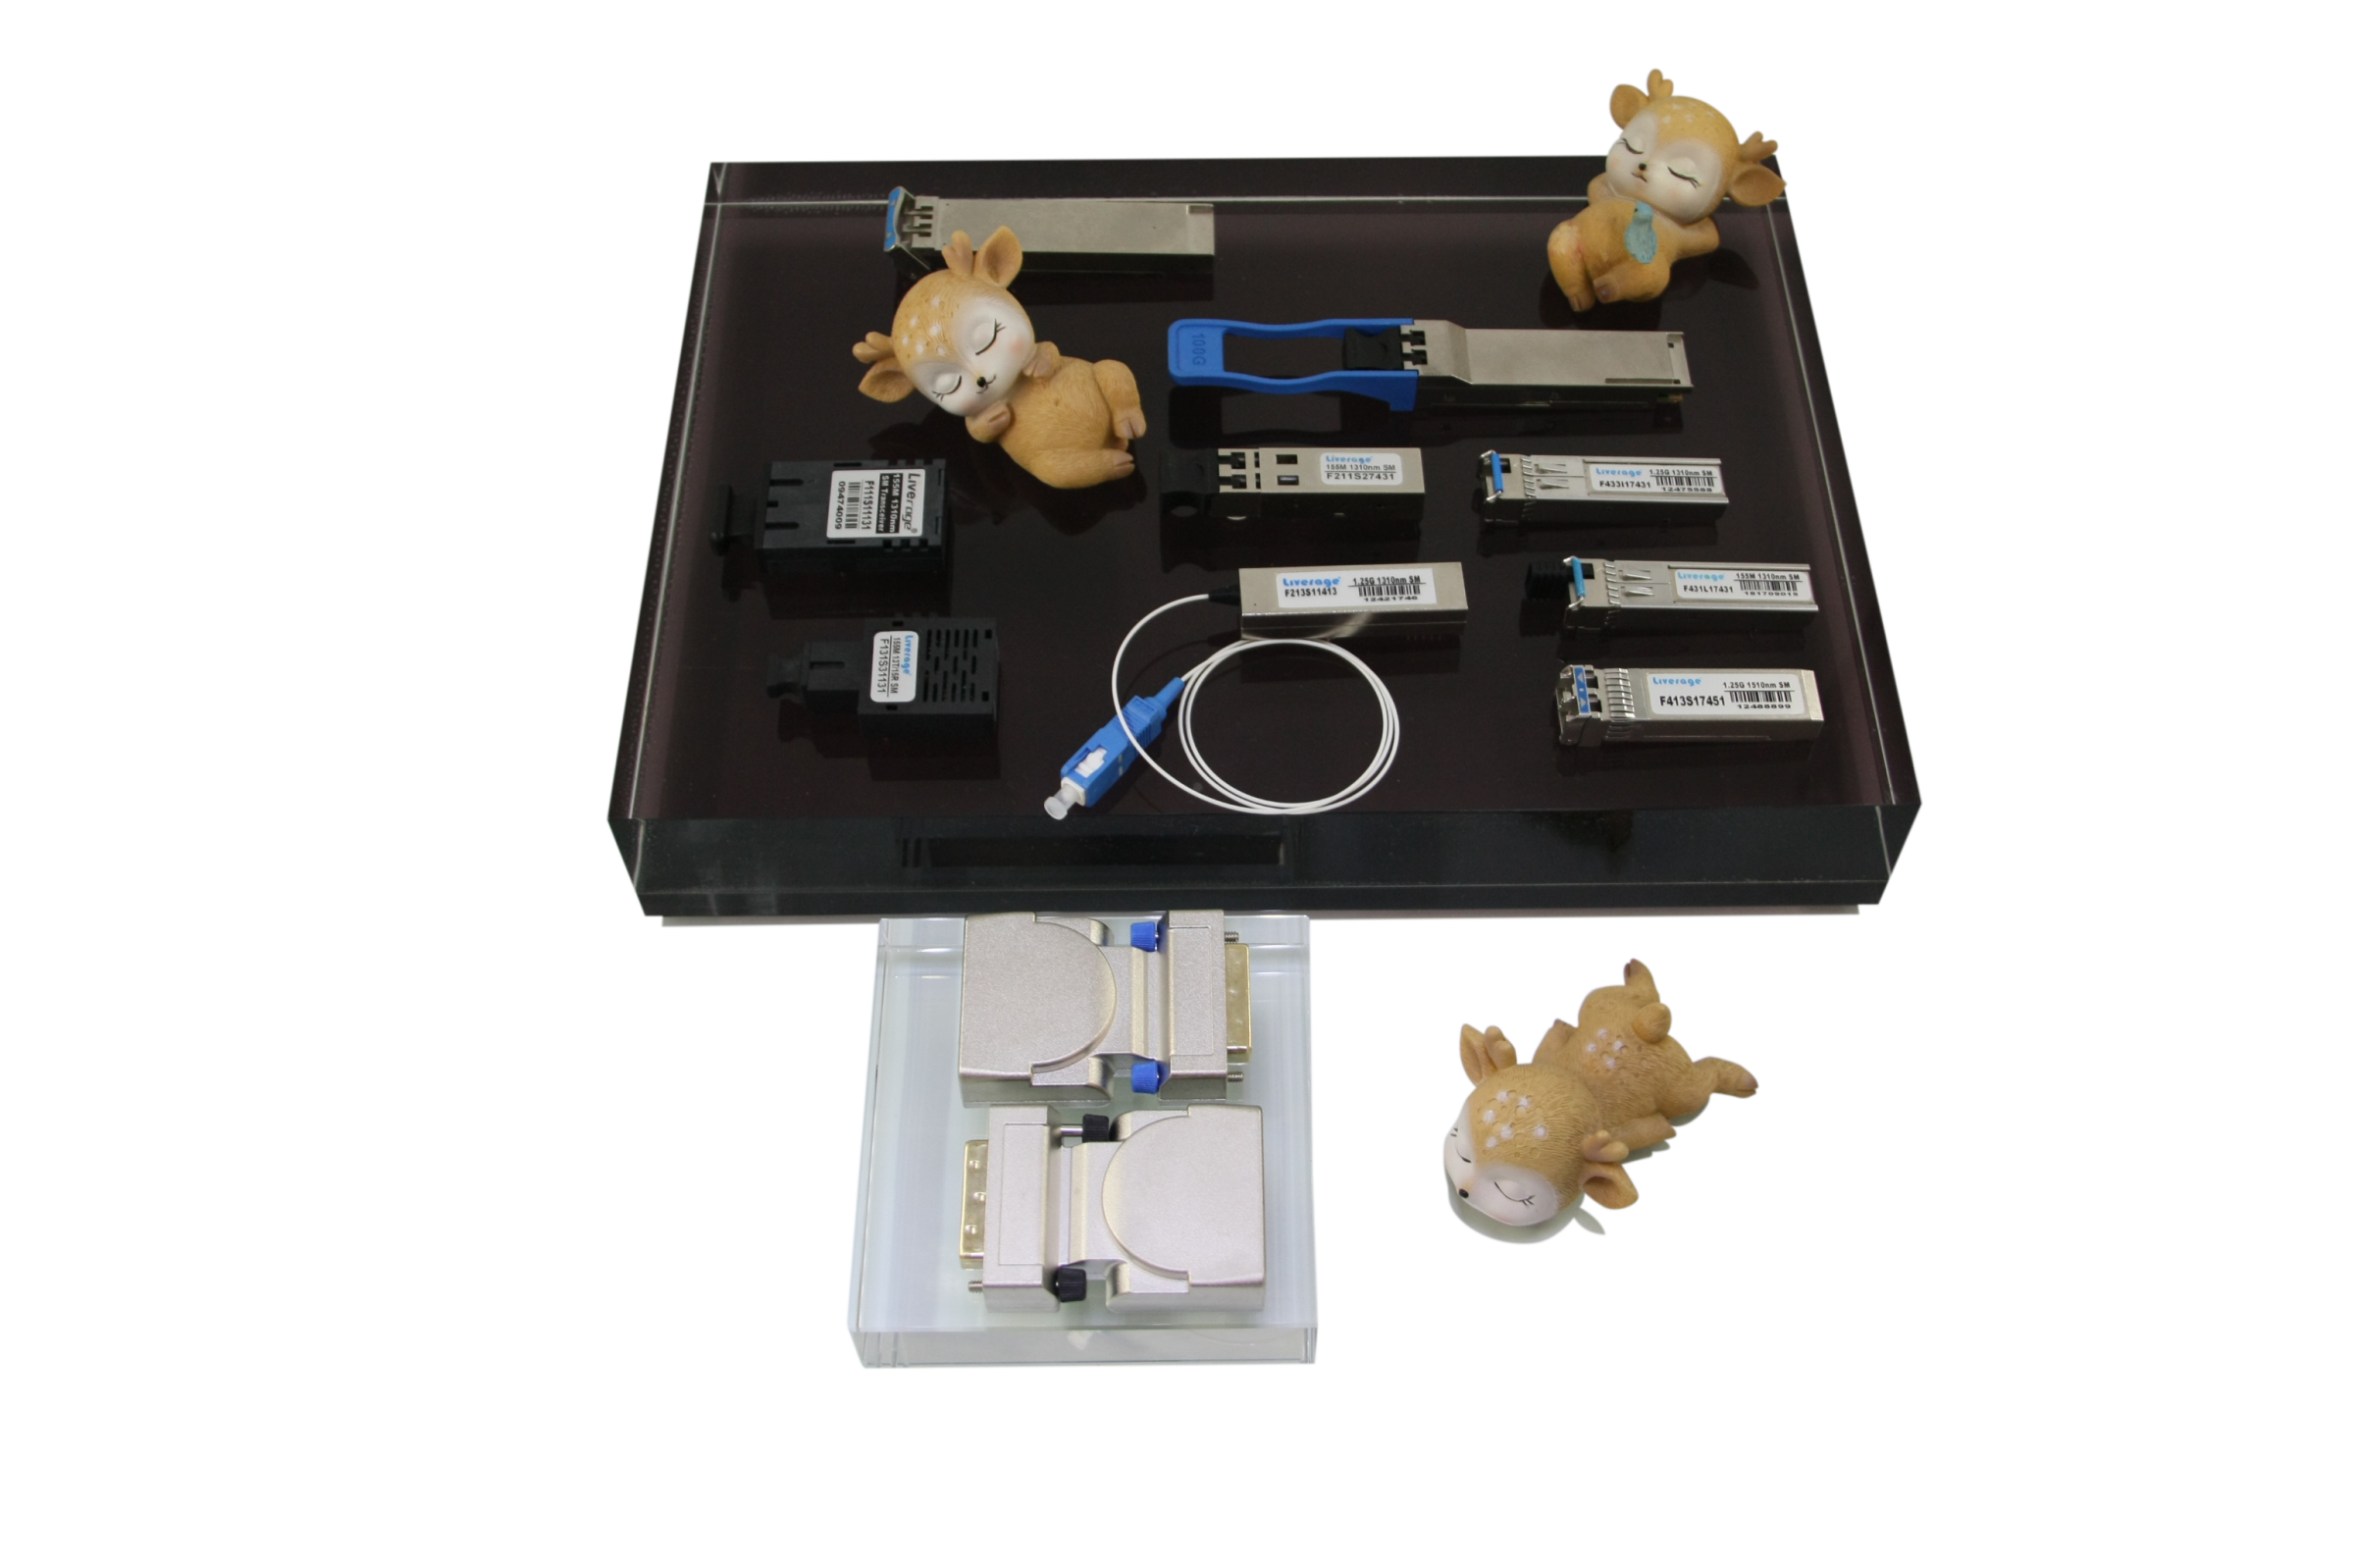 We have several optical transceivers like QSFP28, QSFP+, SFP+, SFF and XFP.